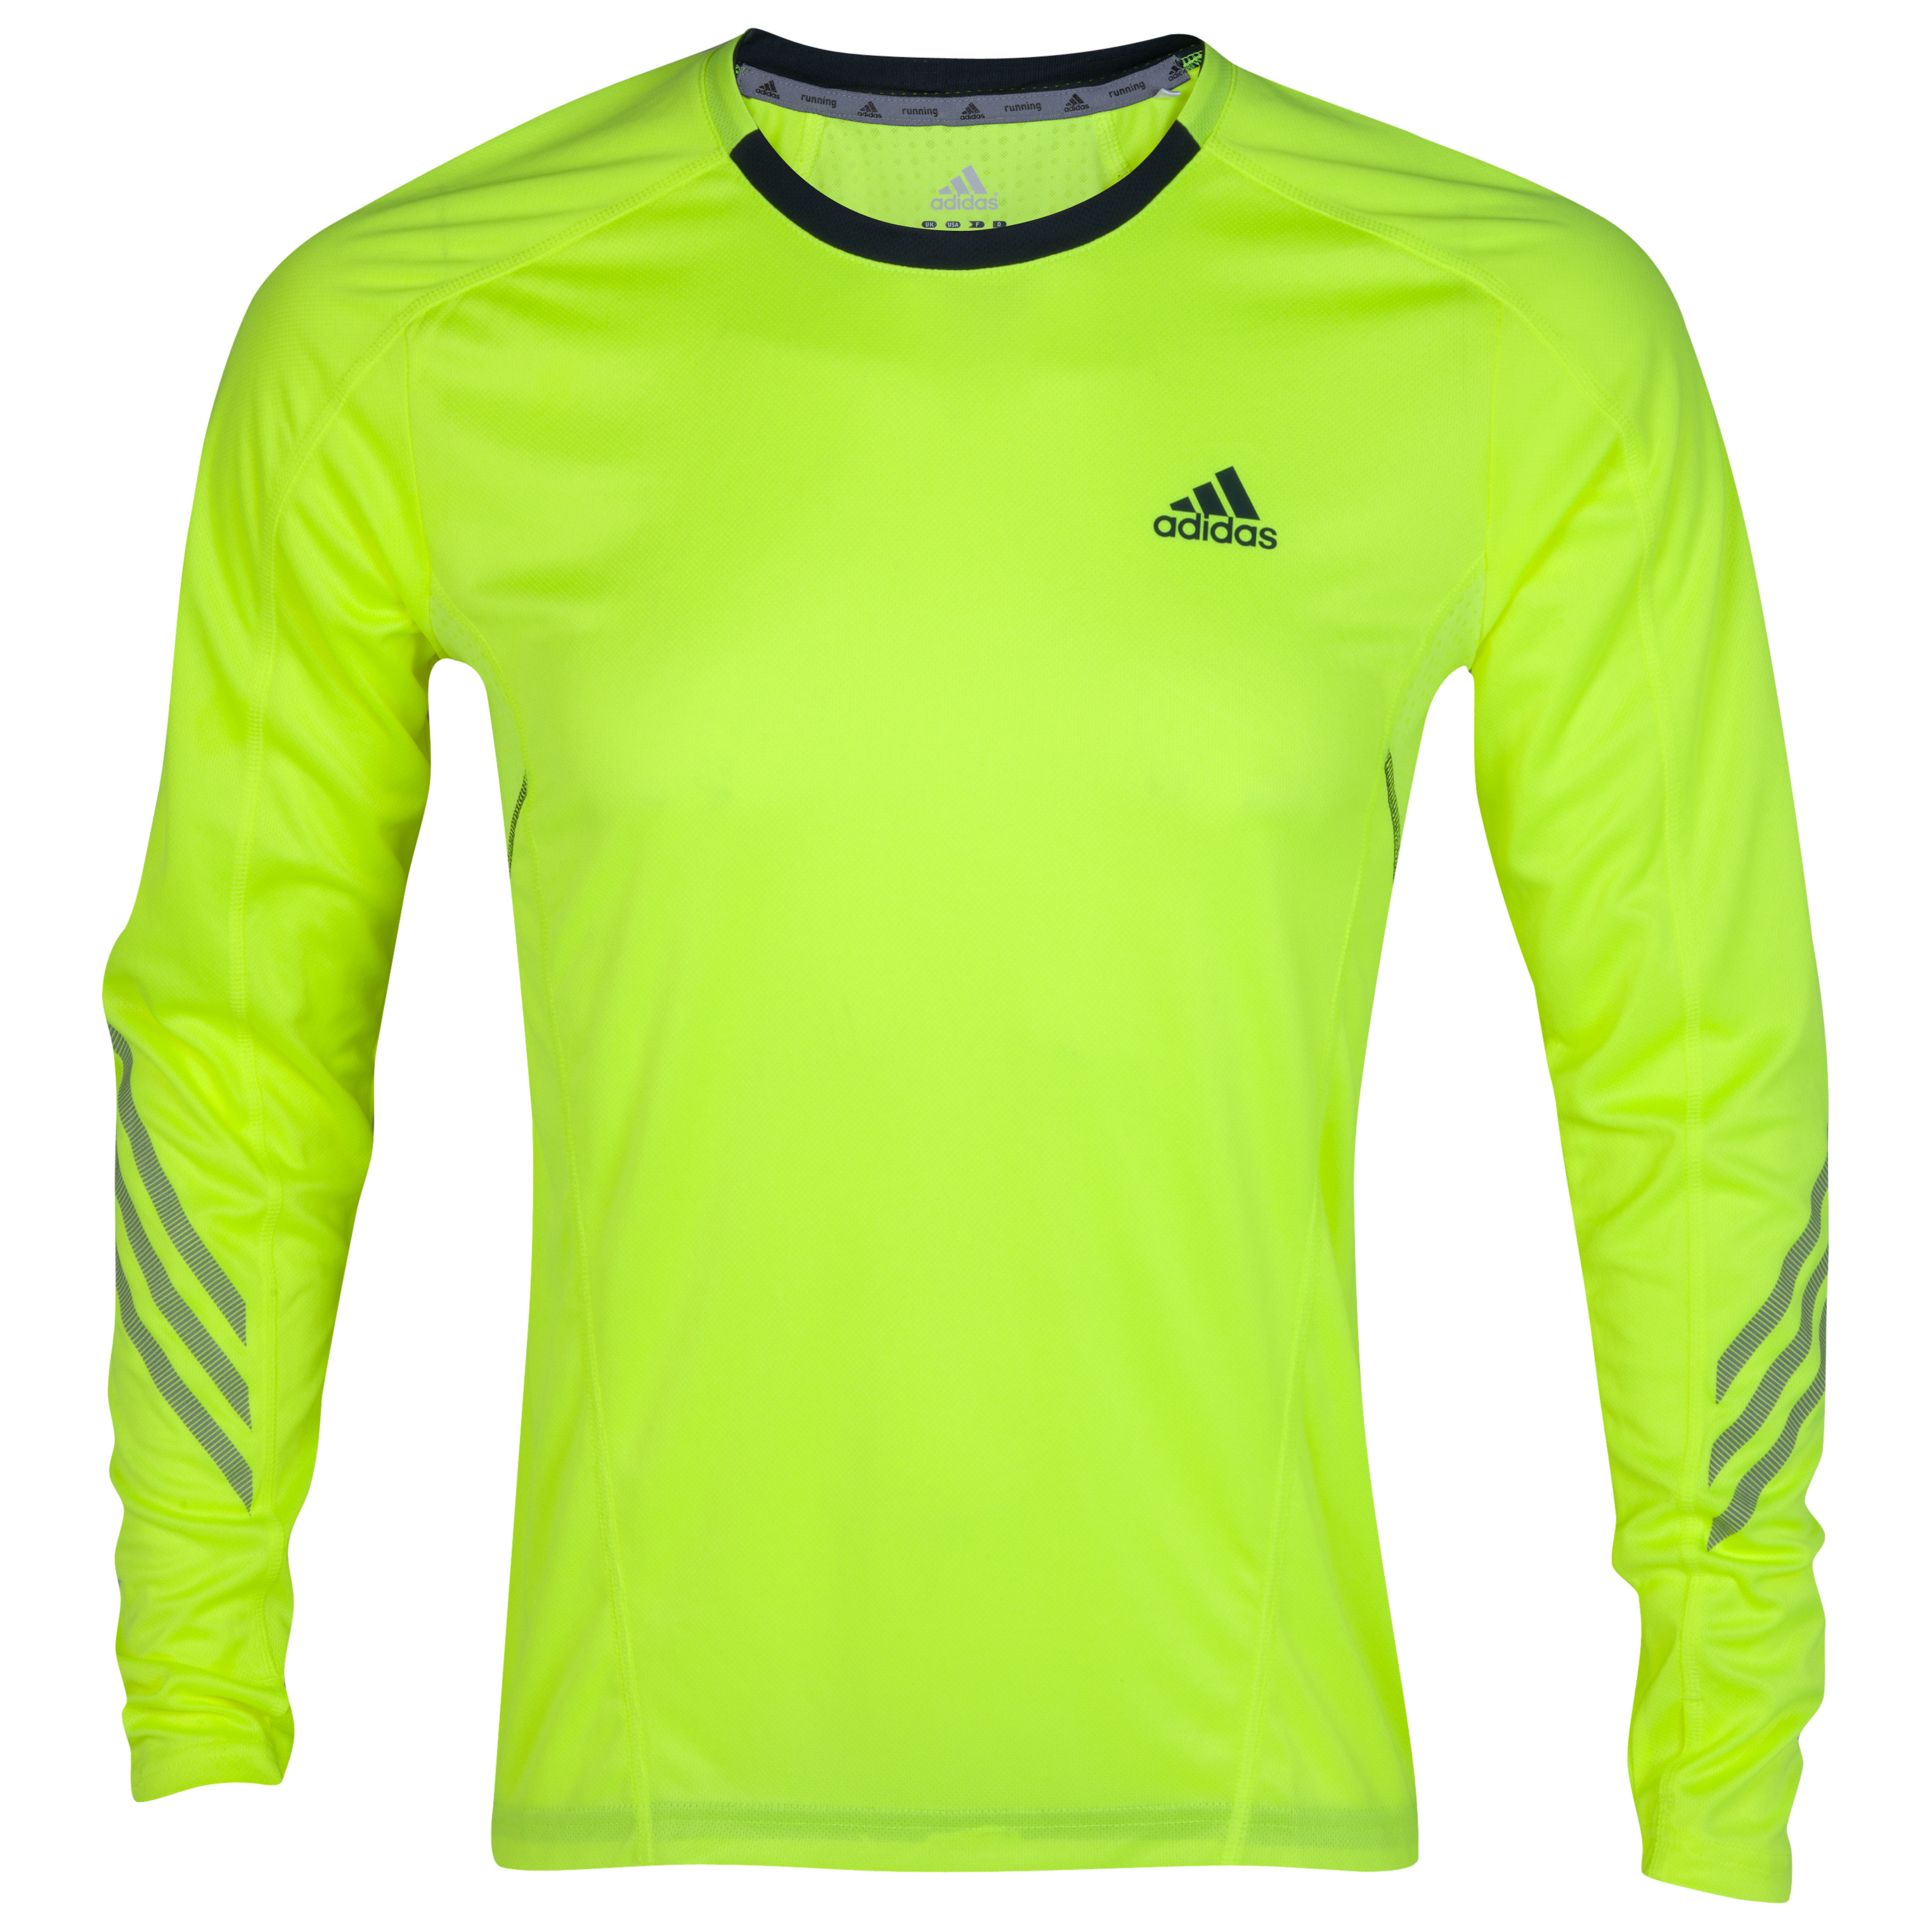 Adidas Supernova T-Shirt - Long Sleeve - Electricity